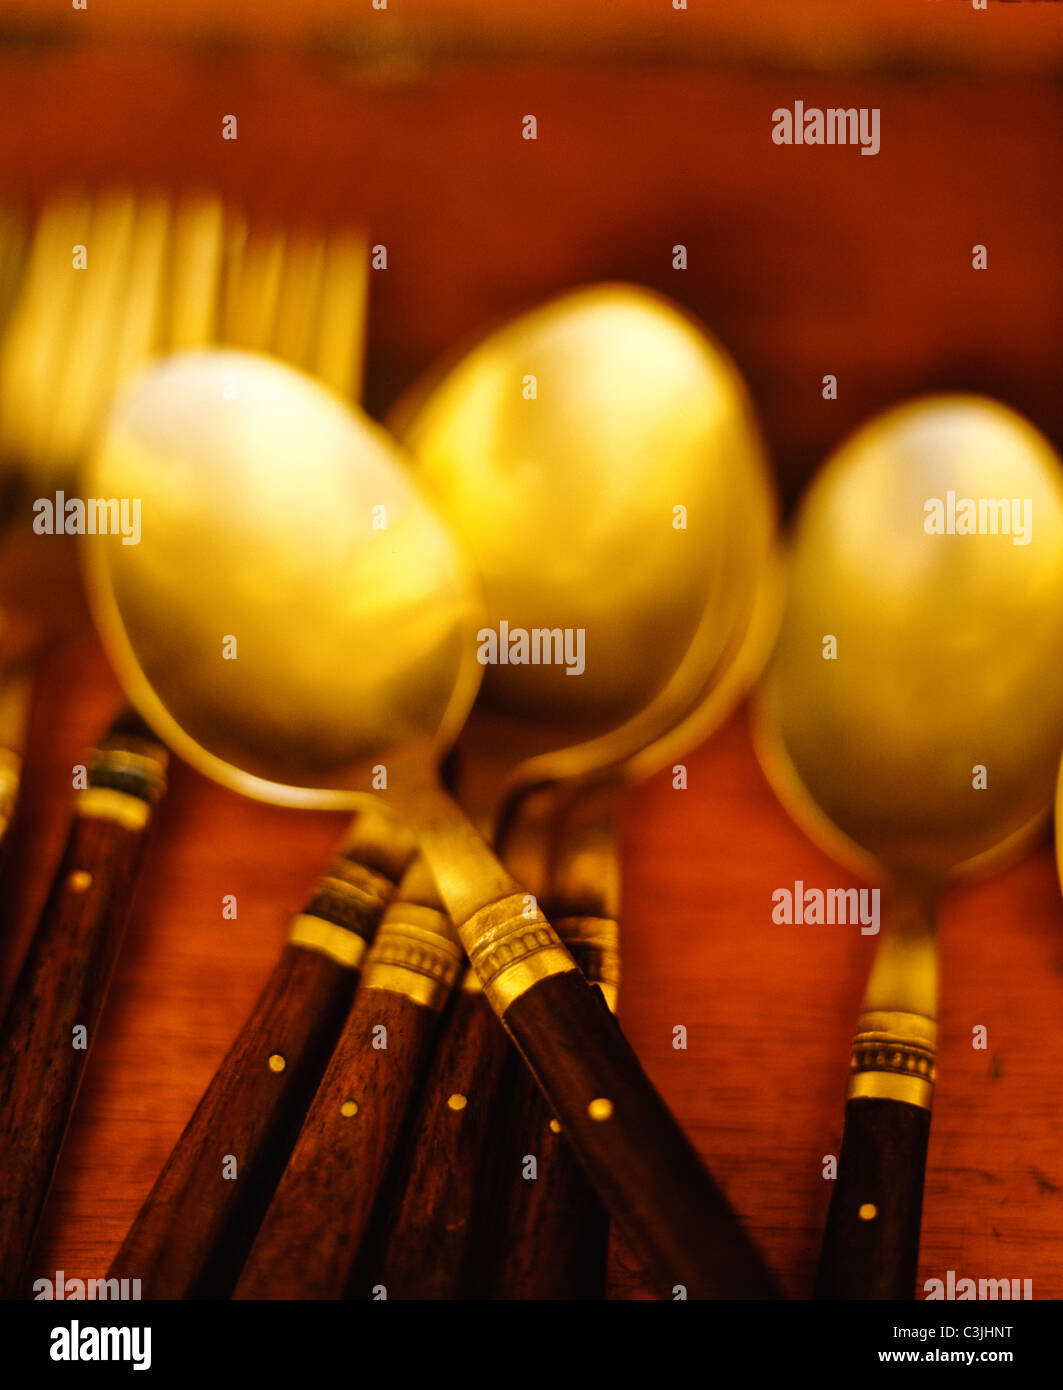 Forks and Spoons - Stock Image